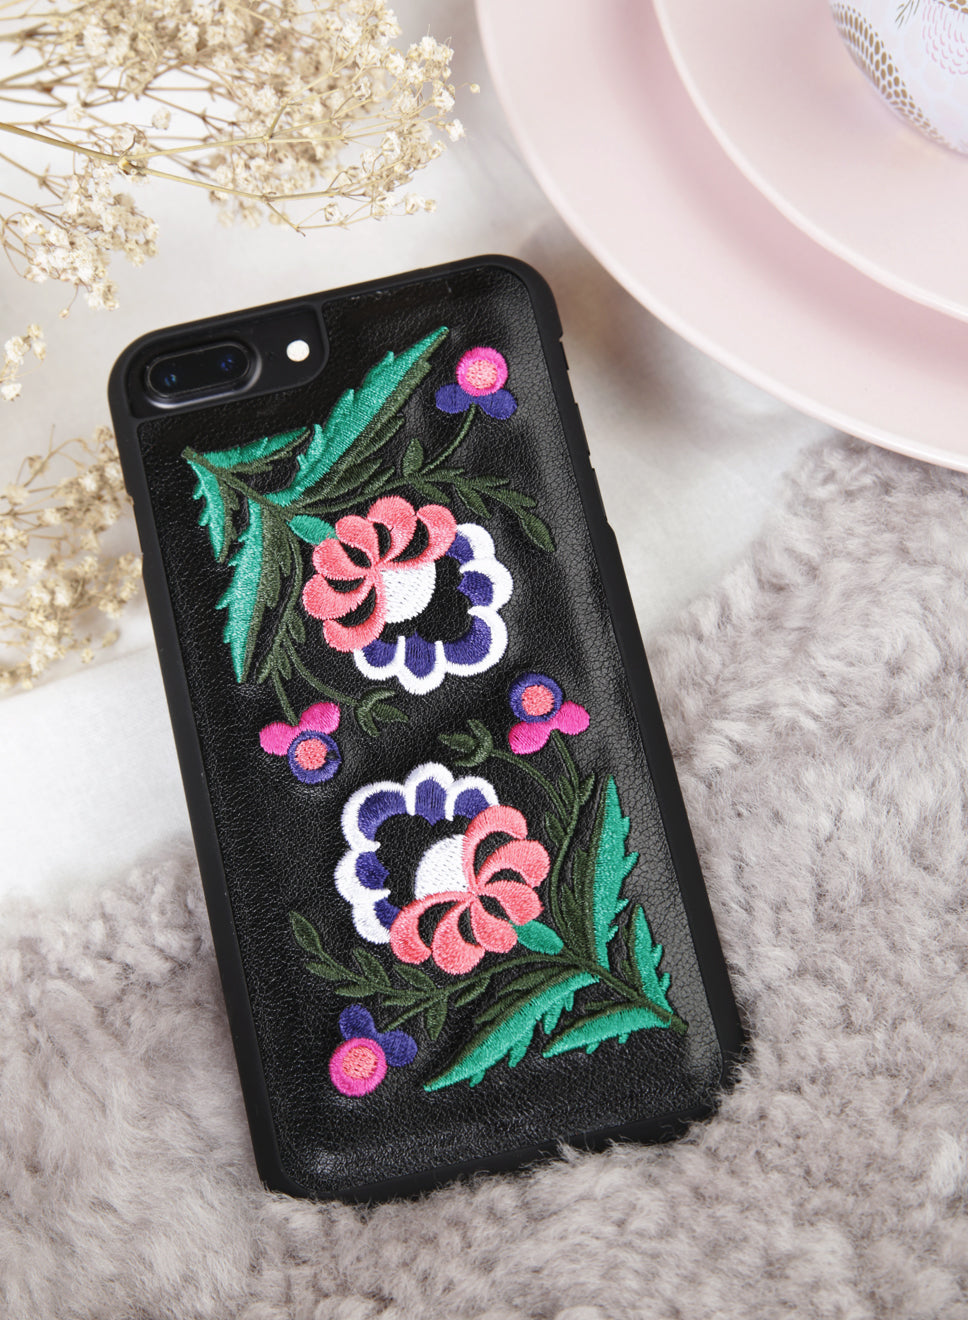 WILD FLORALS Embroidery iPhone Case (Red) at $ 19.90 only sold at And Well Dressed Online Fashion Store Singapore